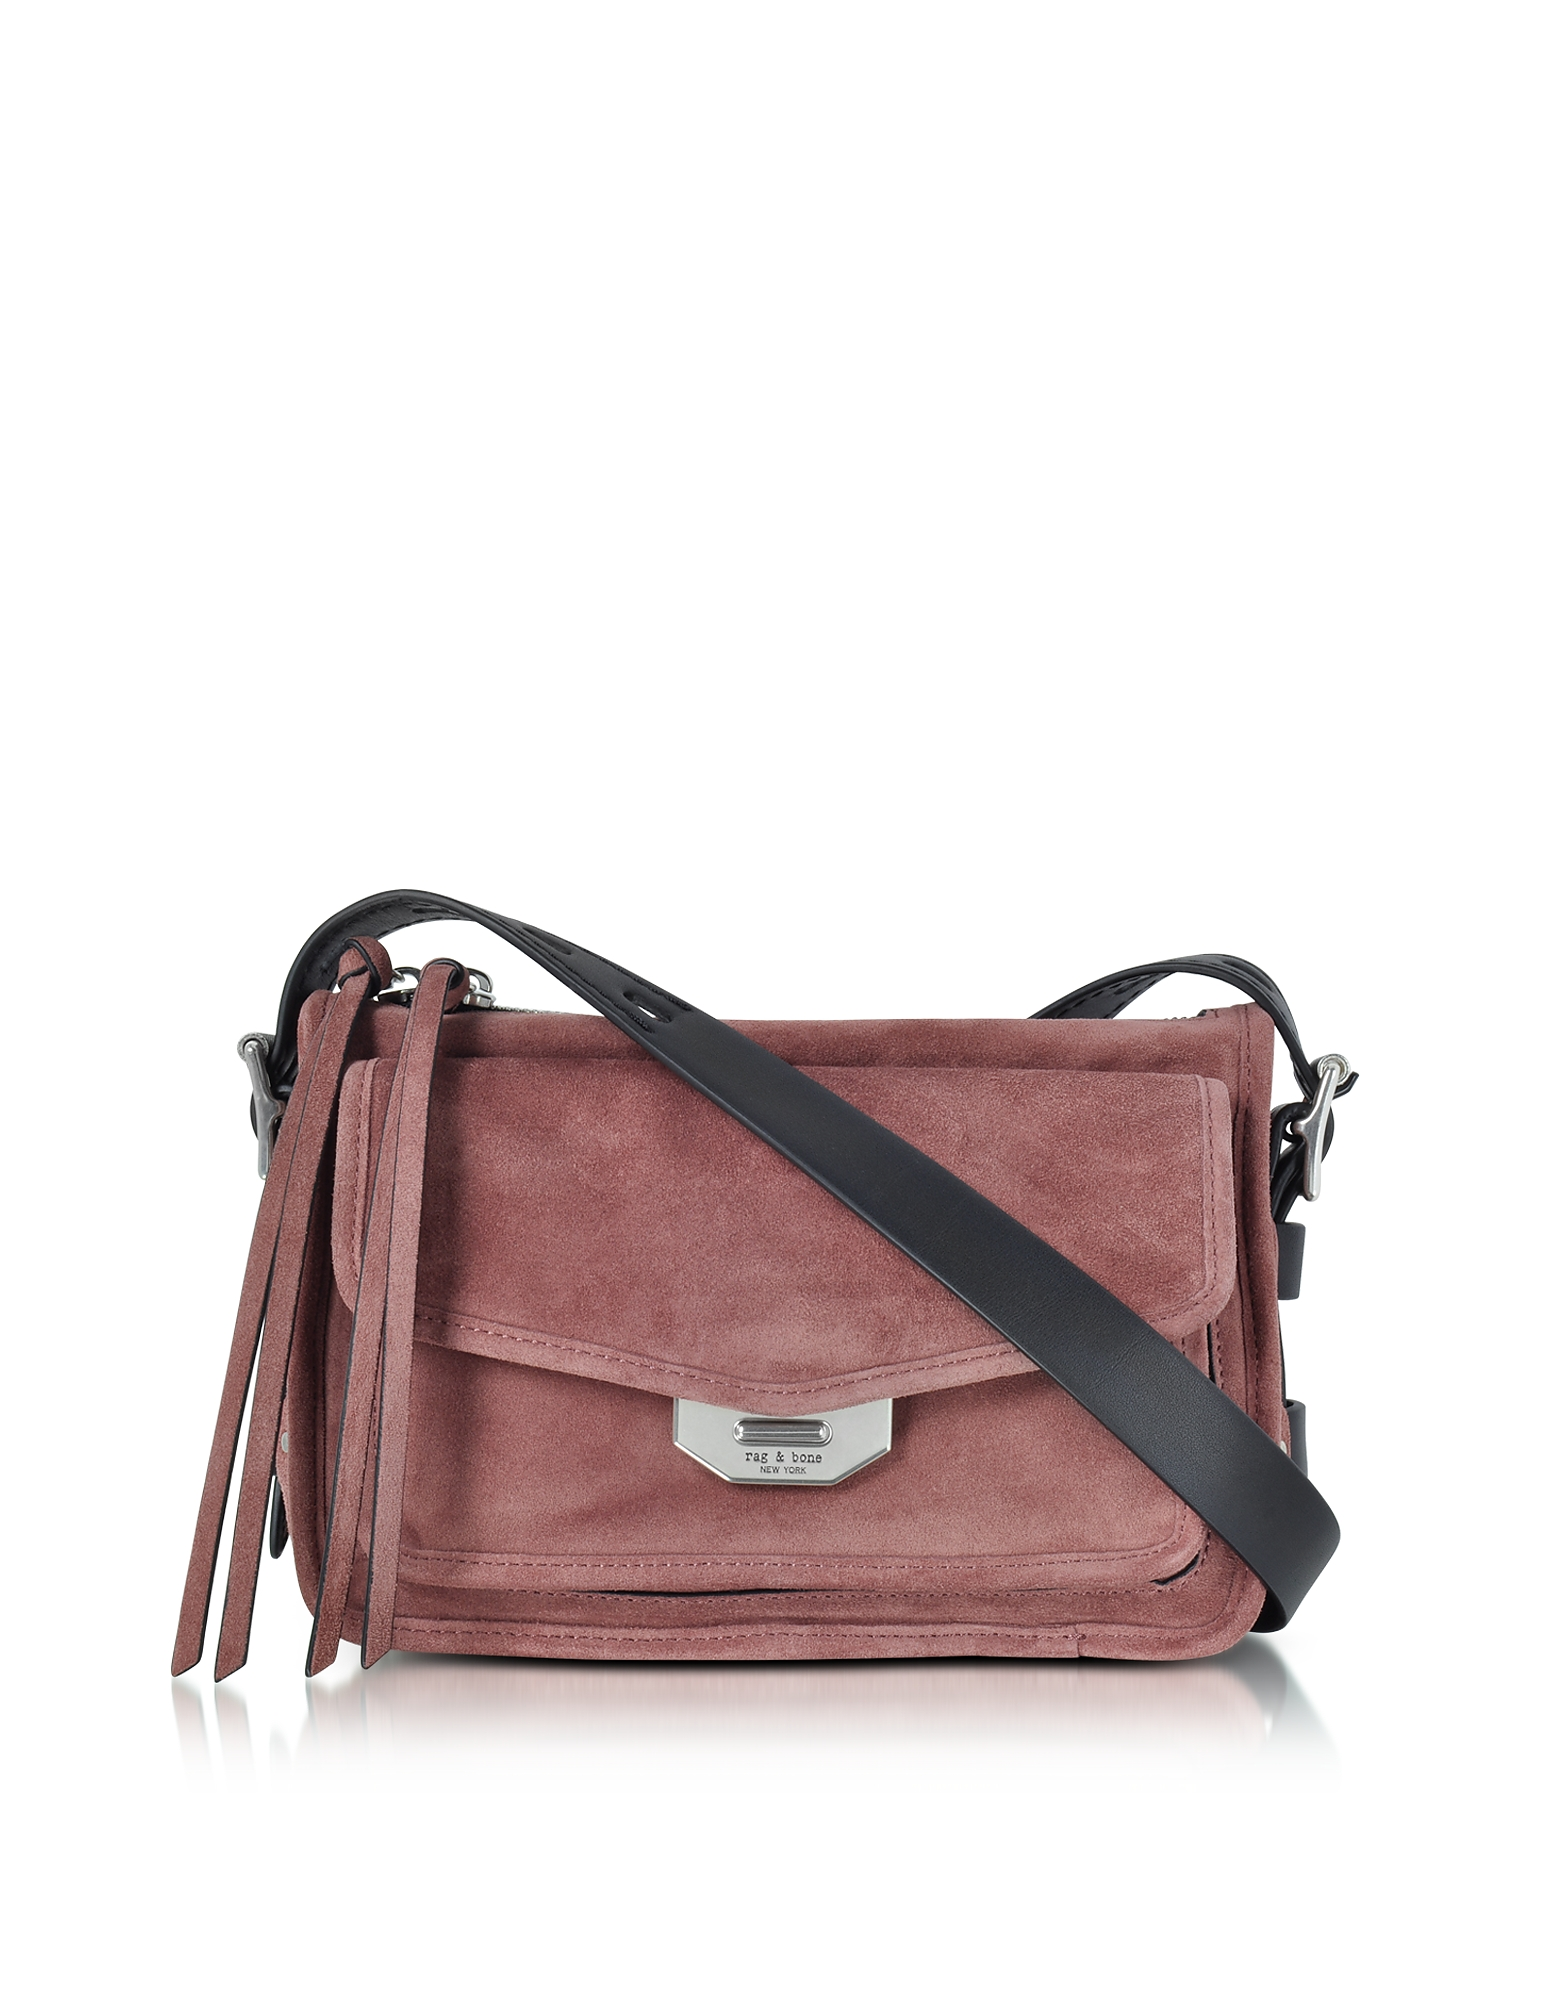 Rag & Bone Handbags, Mauve Suede Small Field Messenger Bag